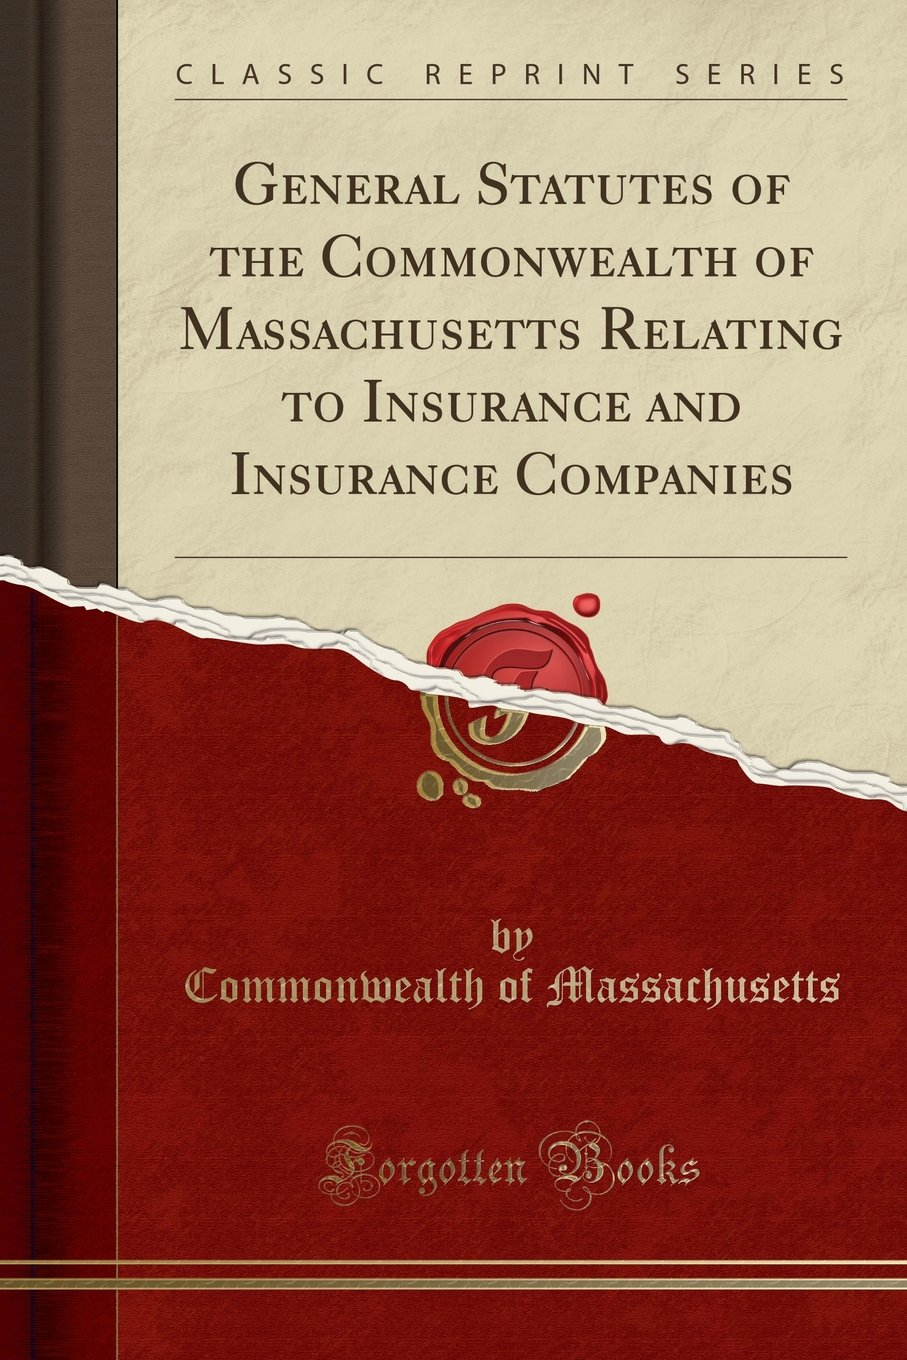 Download General Statutes of the Commonwealth of Massachusetts Relating to Insurance and Insurance Companies (Classic Reprint) ebook